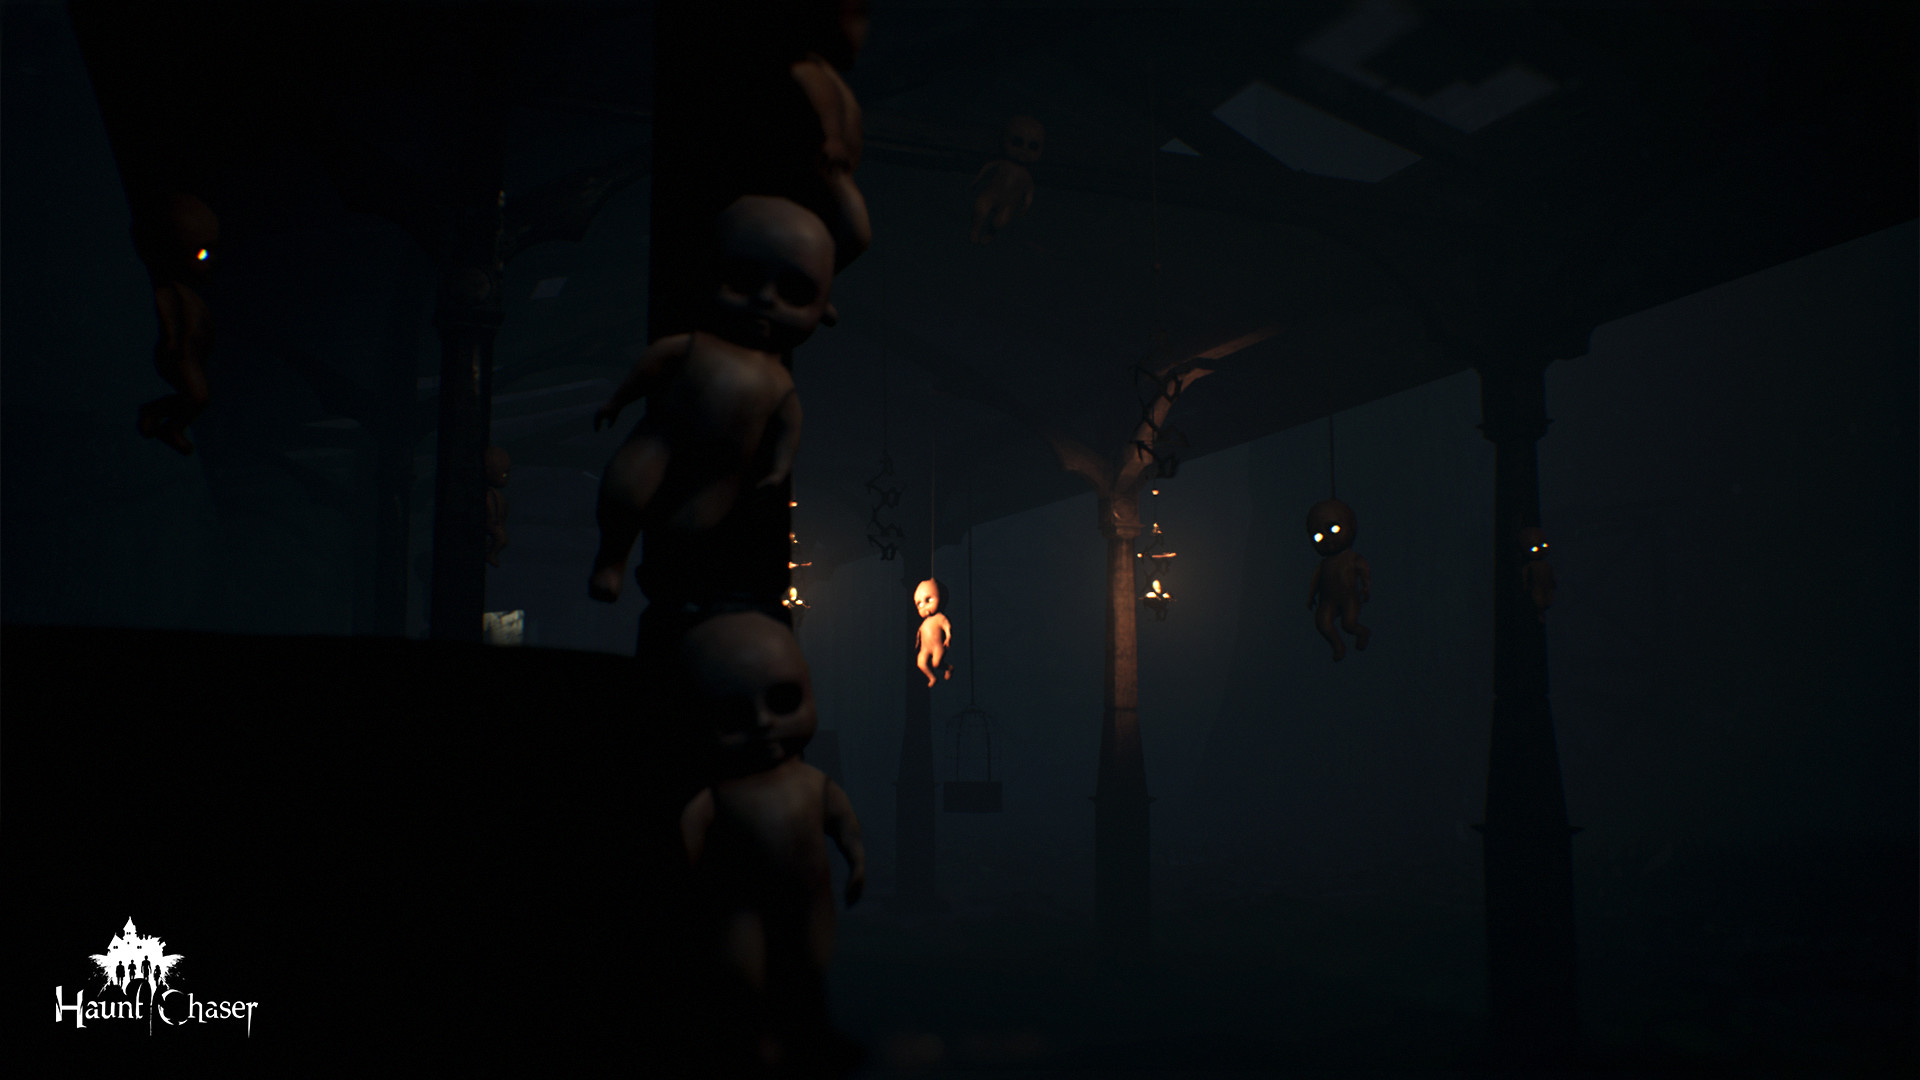 Haunt Chaser Free Download